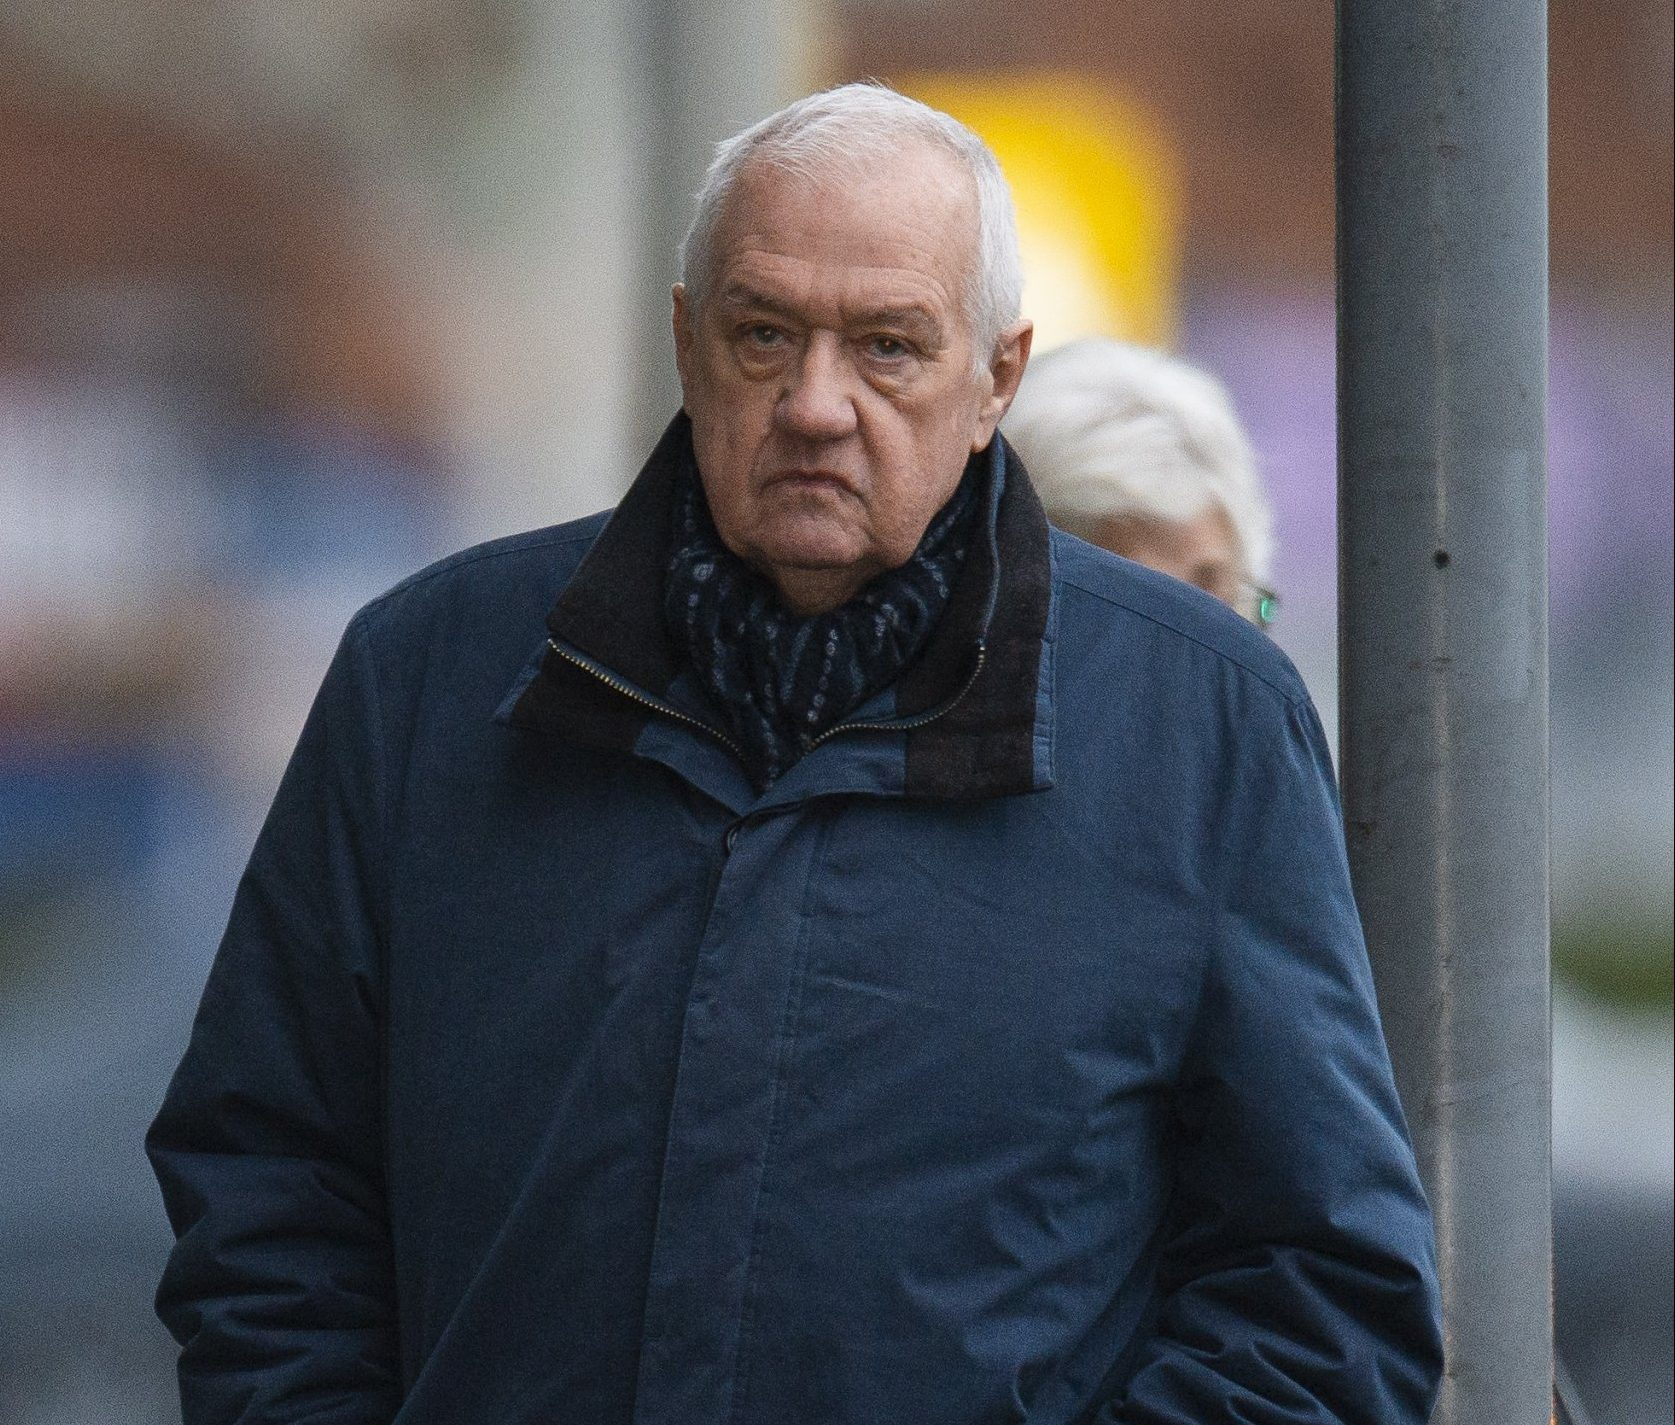 epa07285606 Former Police Chief Suptrintendant David Duckenfield arrives at Preston Crown Court, in north west England, 15 January 2019. Media reports state that the manslaughter trial of former Police Chief Suptrintendant David Duckenfield is taking place at Preston Crown Court where he is facing charges of the manslaughter of 95 Liverpool supporters. David Duckenfield was the police match commander at the English soccer FA Cup semi final between Liverpool and Nottingham Forest at the Sheffield Wednesday ground in Sheffield, northern England on 15 April 1989 where 95 Liverpool supporters died. Duckenfield denies all charges. EPA/PETER POWELL